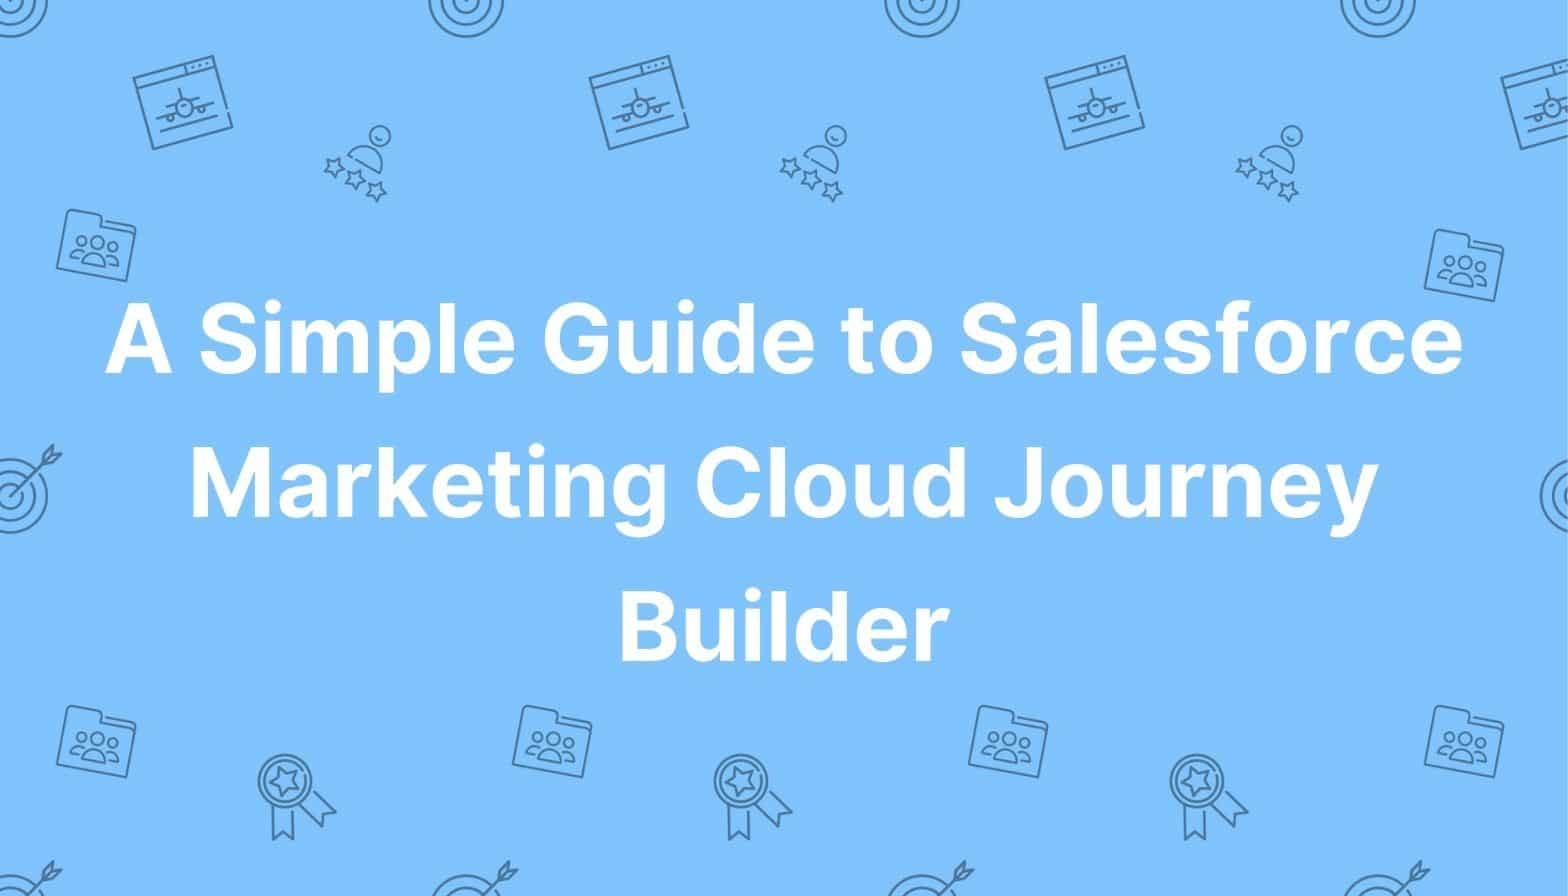 A Simple Guide to Salesforce Marketing Cloud Journey Builder